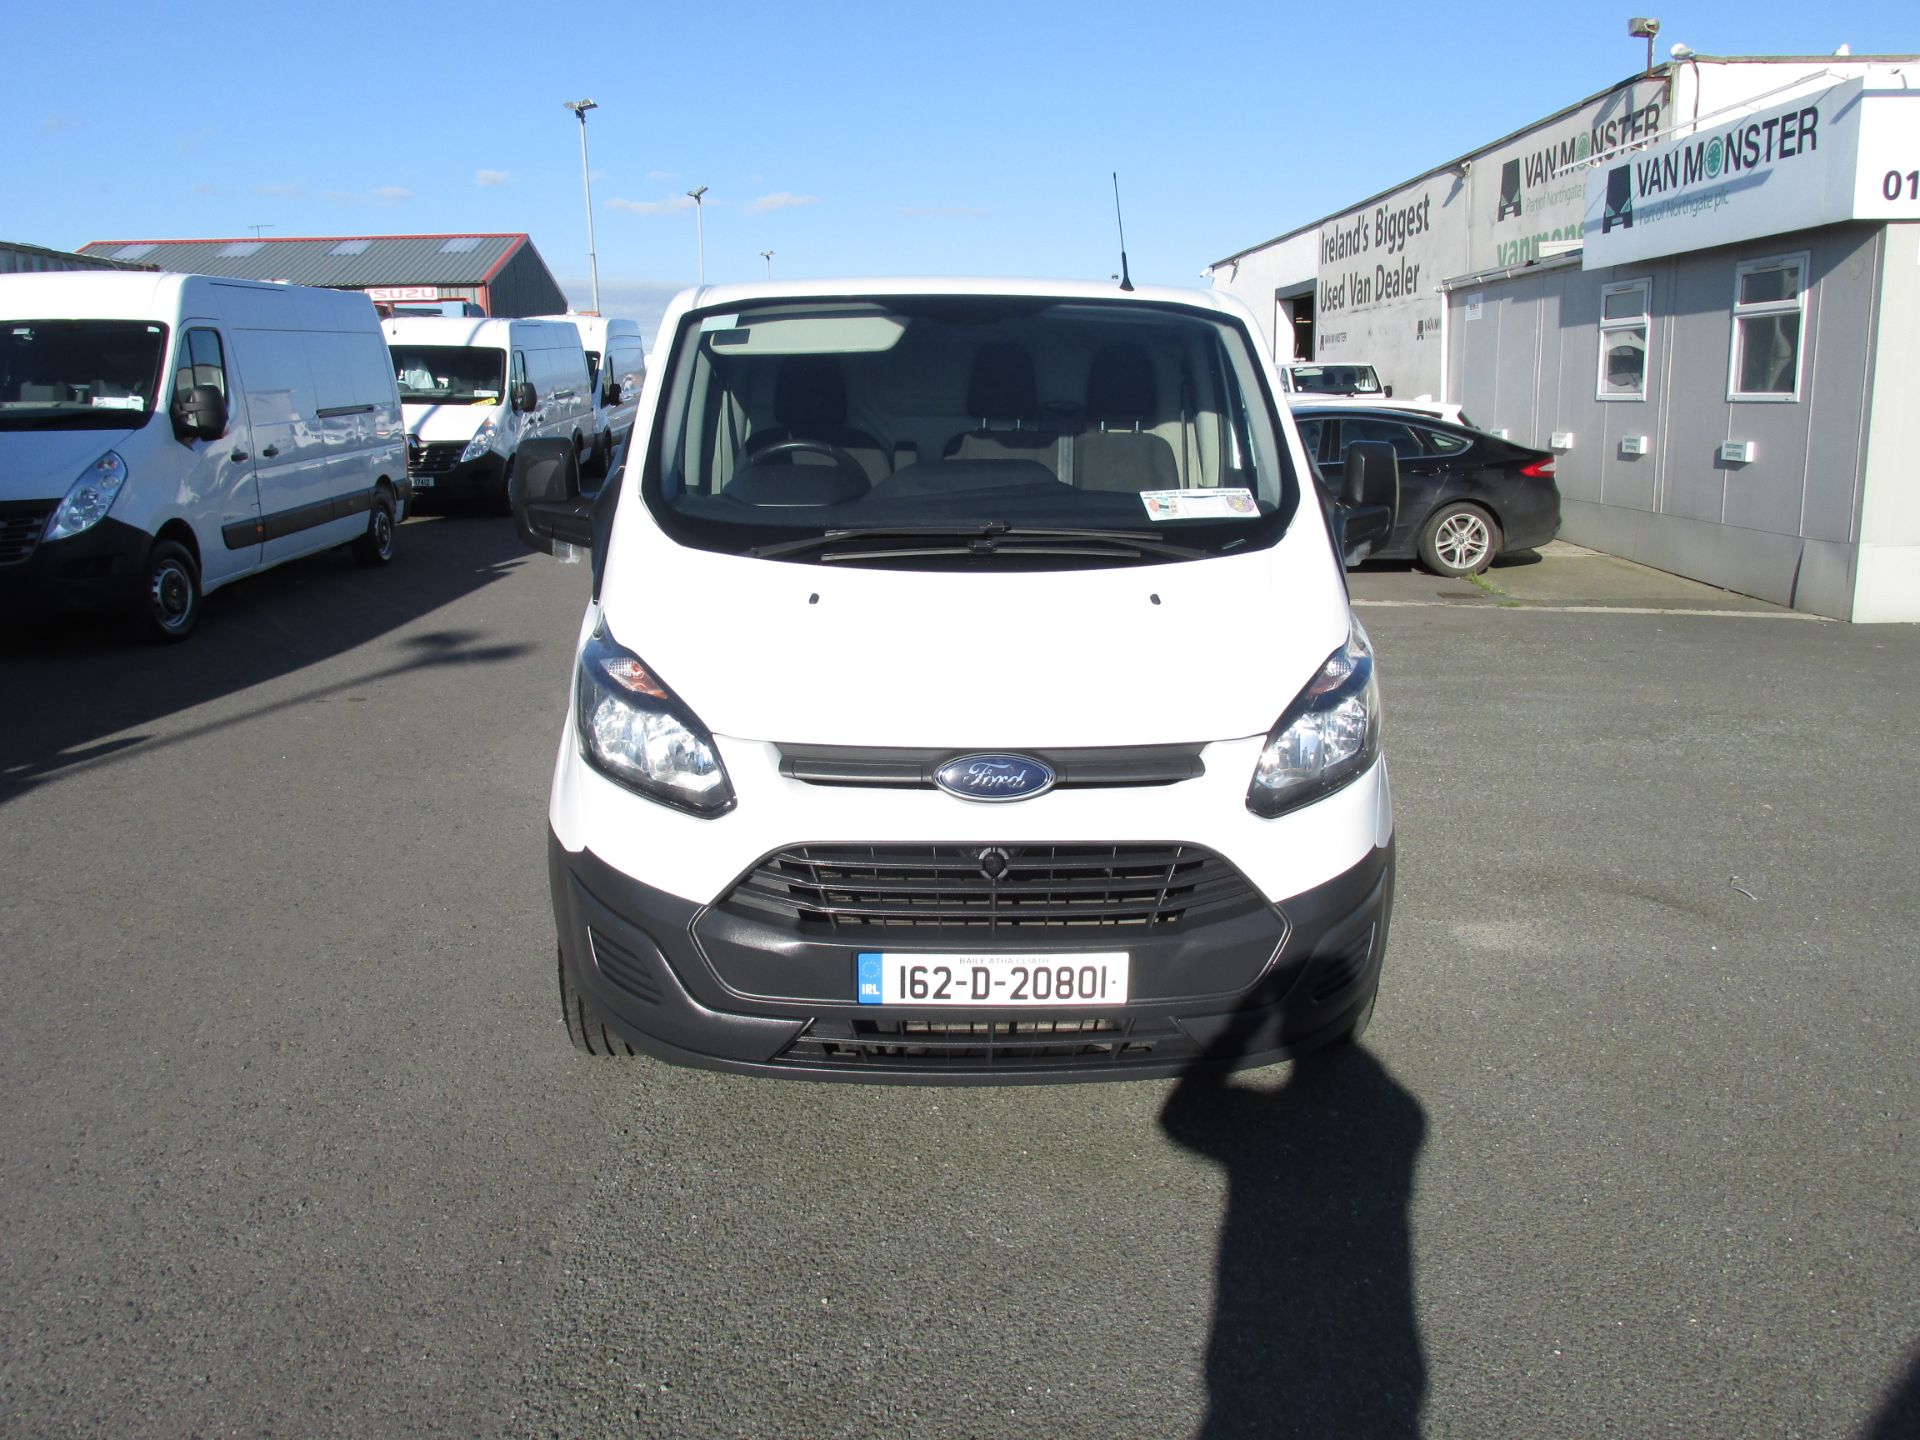 2016 Ford Transit 290 Custom Eco-tech 05DR (162D20801) Image 2